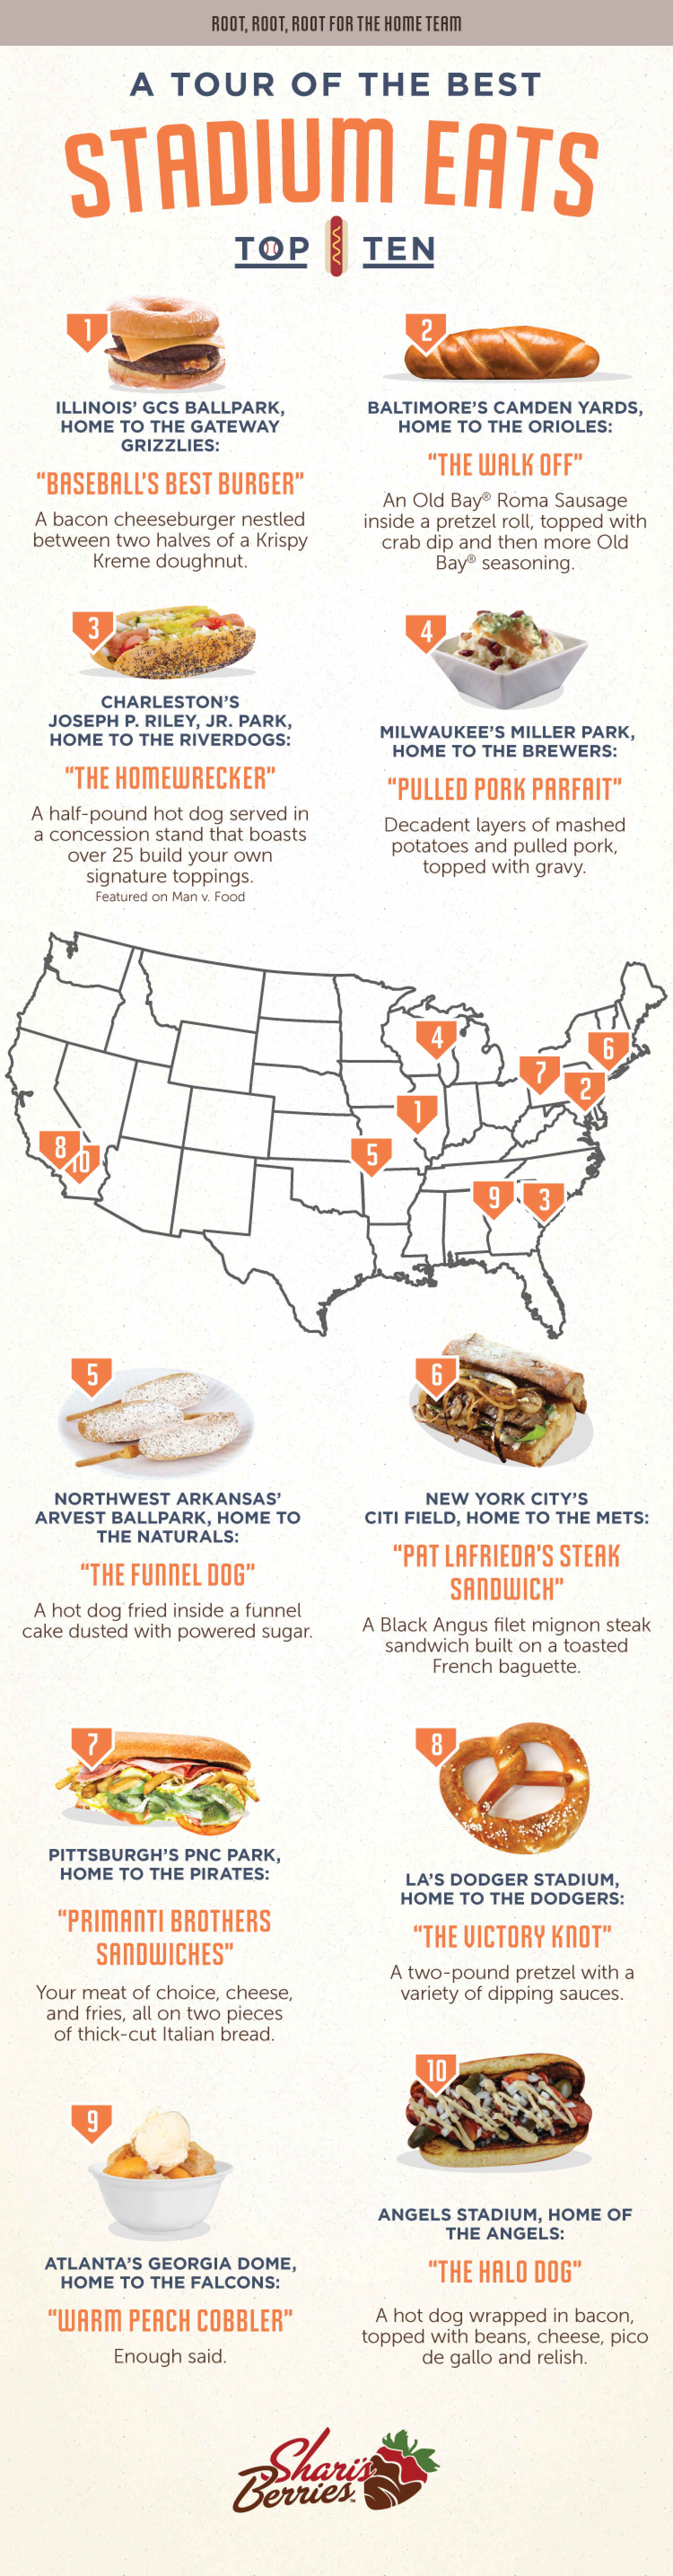 Top 10 Best Ballpark Eats Infographic